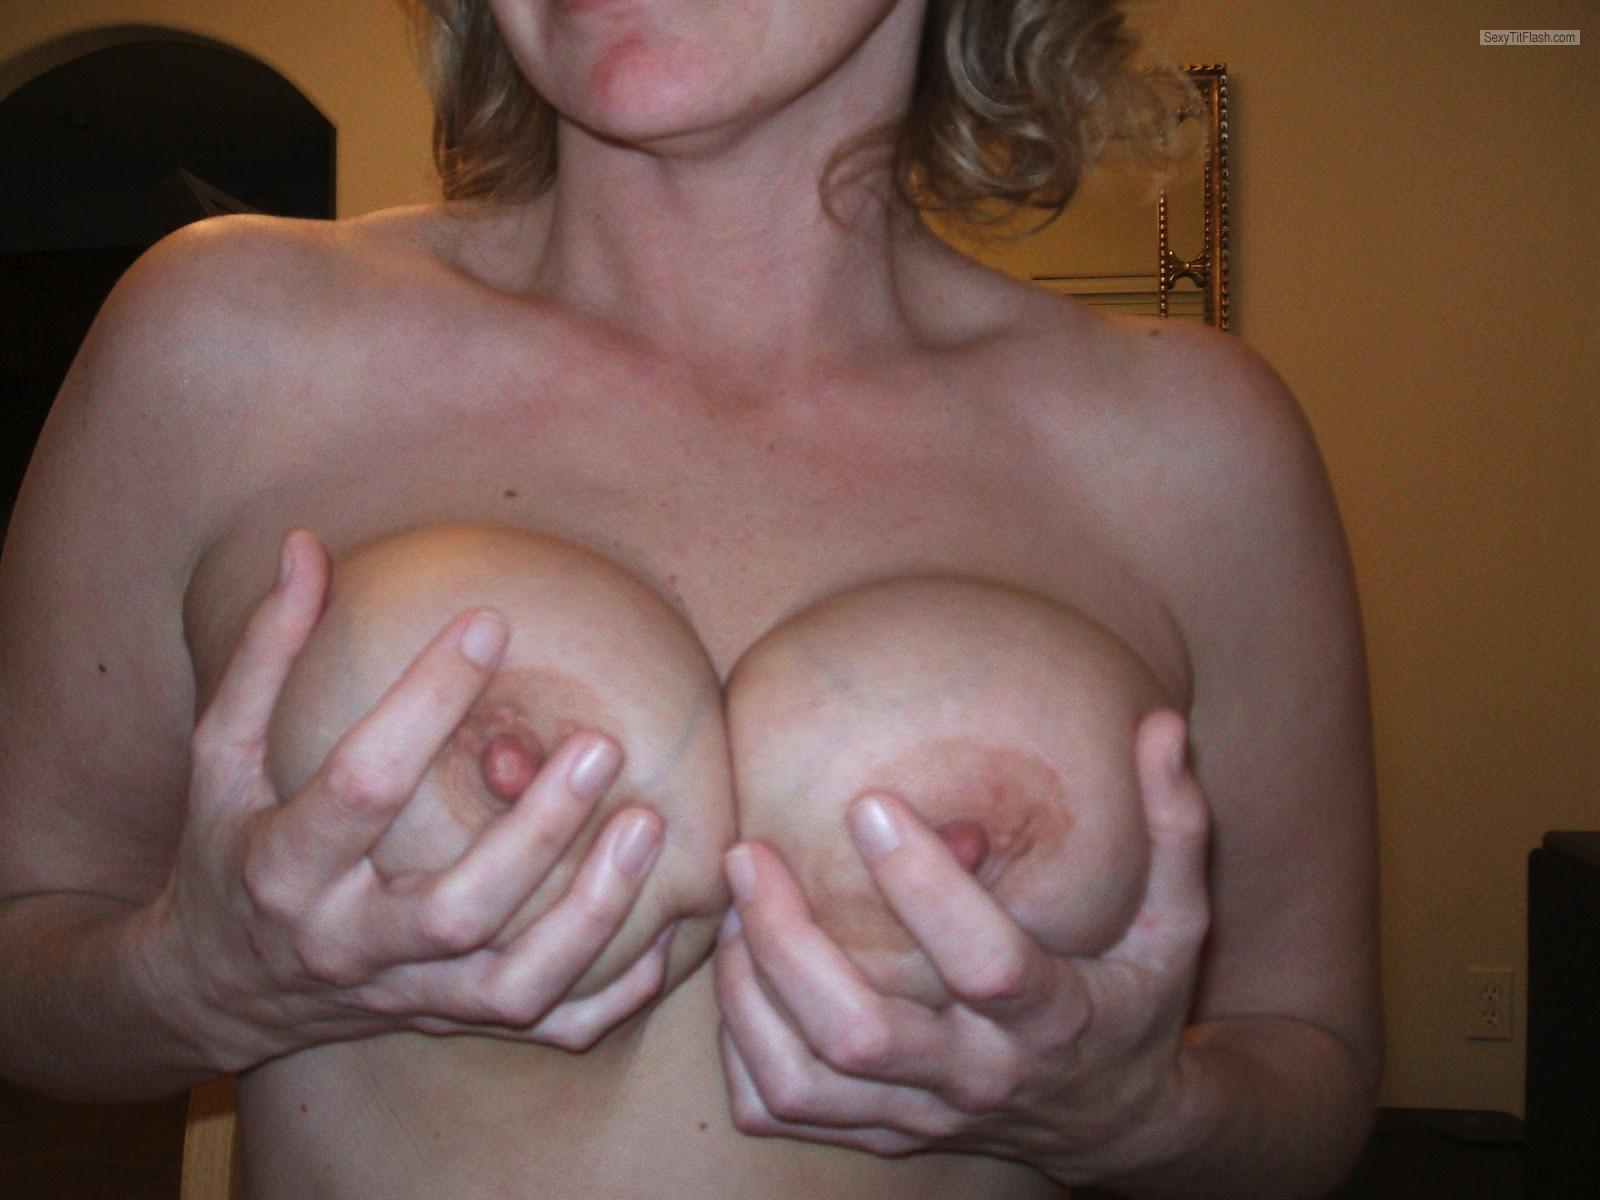 Tit Flash: Ex-Wife's Big Tits - Mona from United States